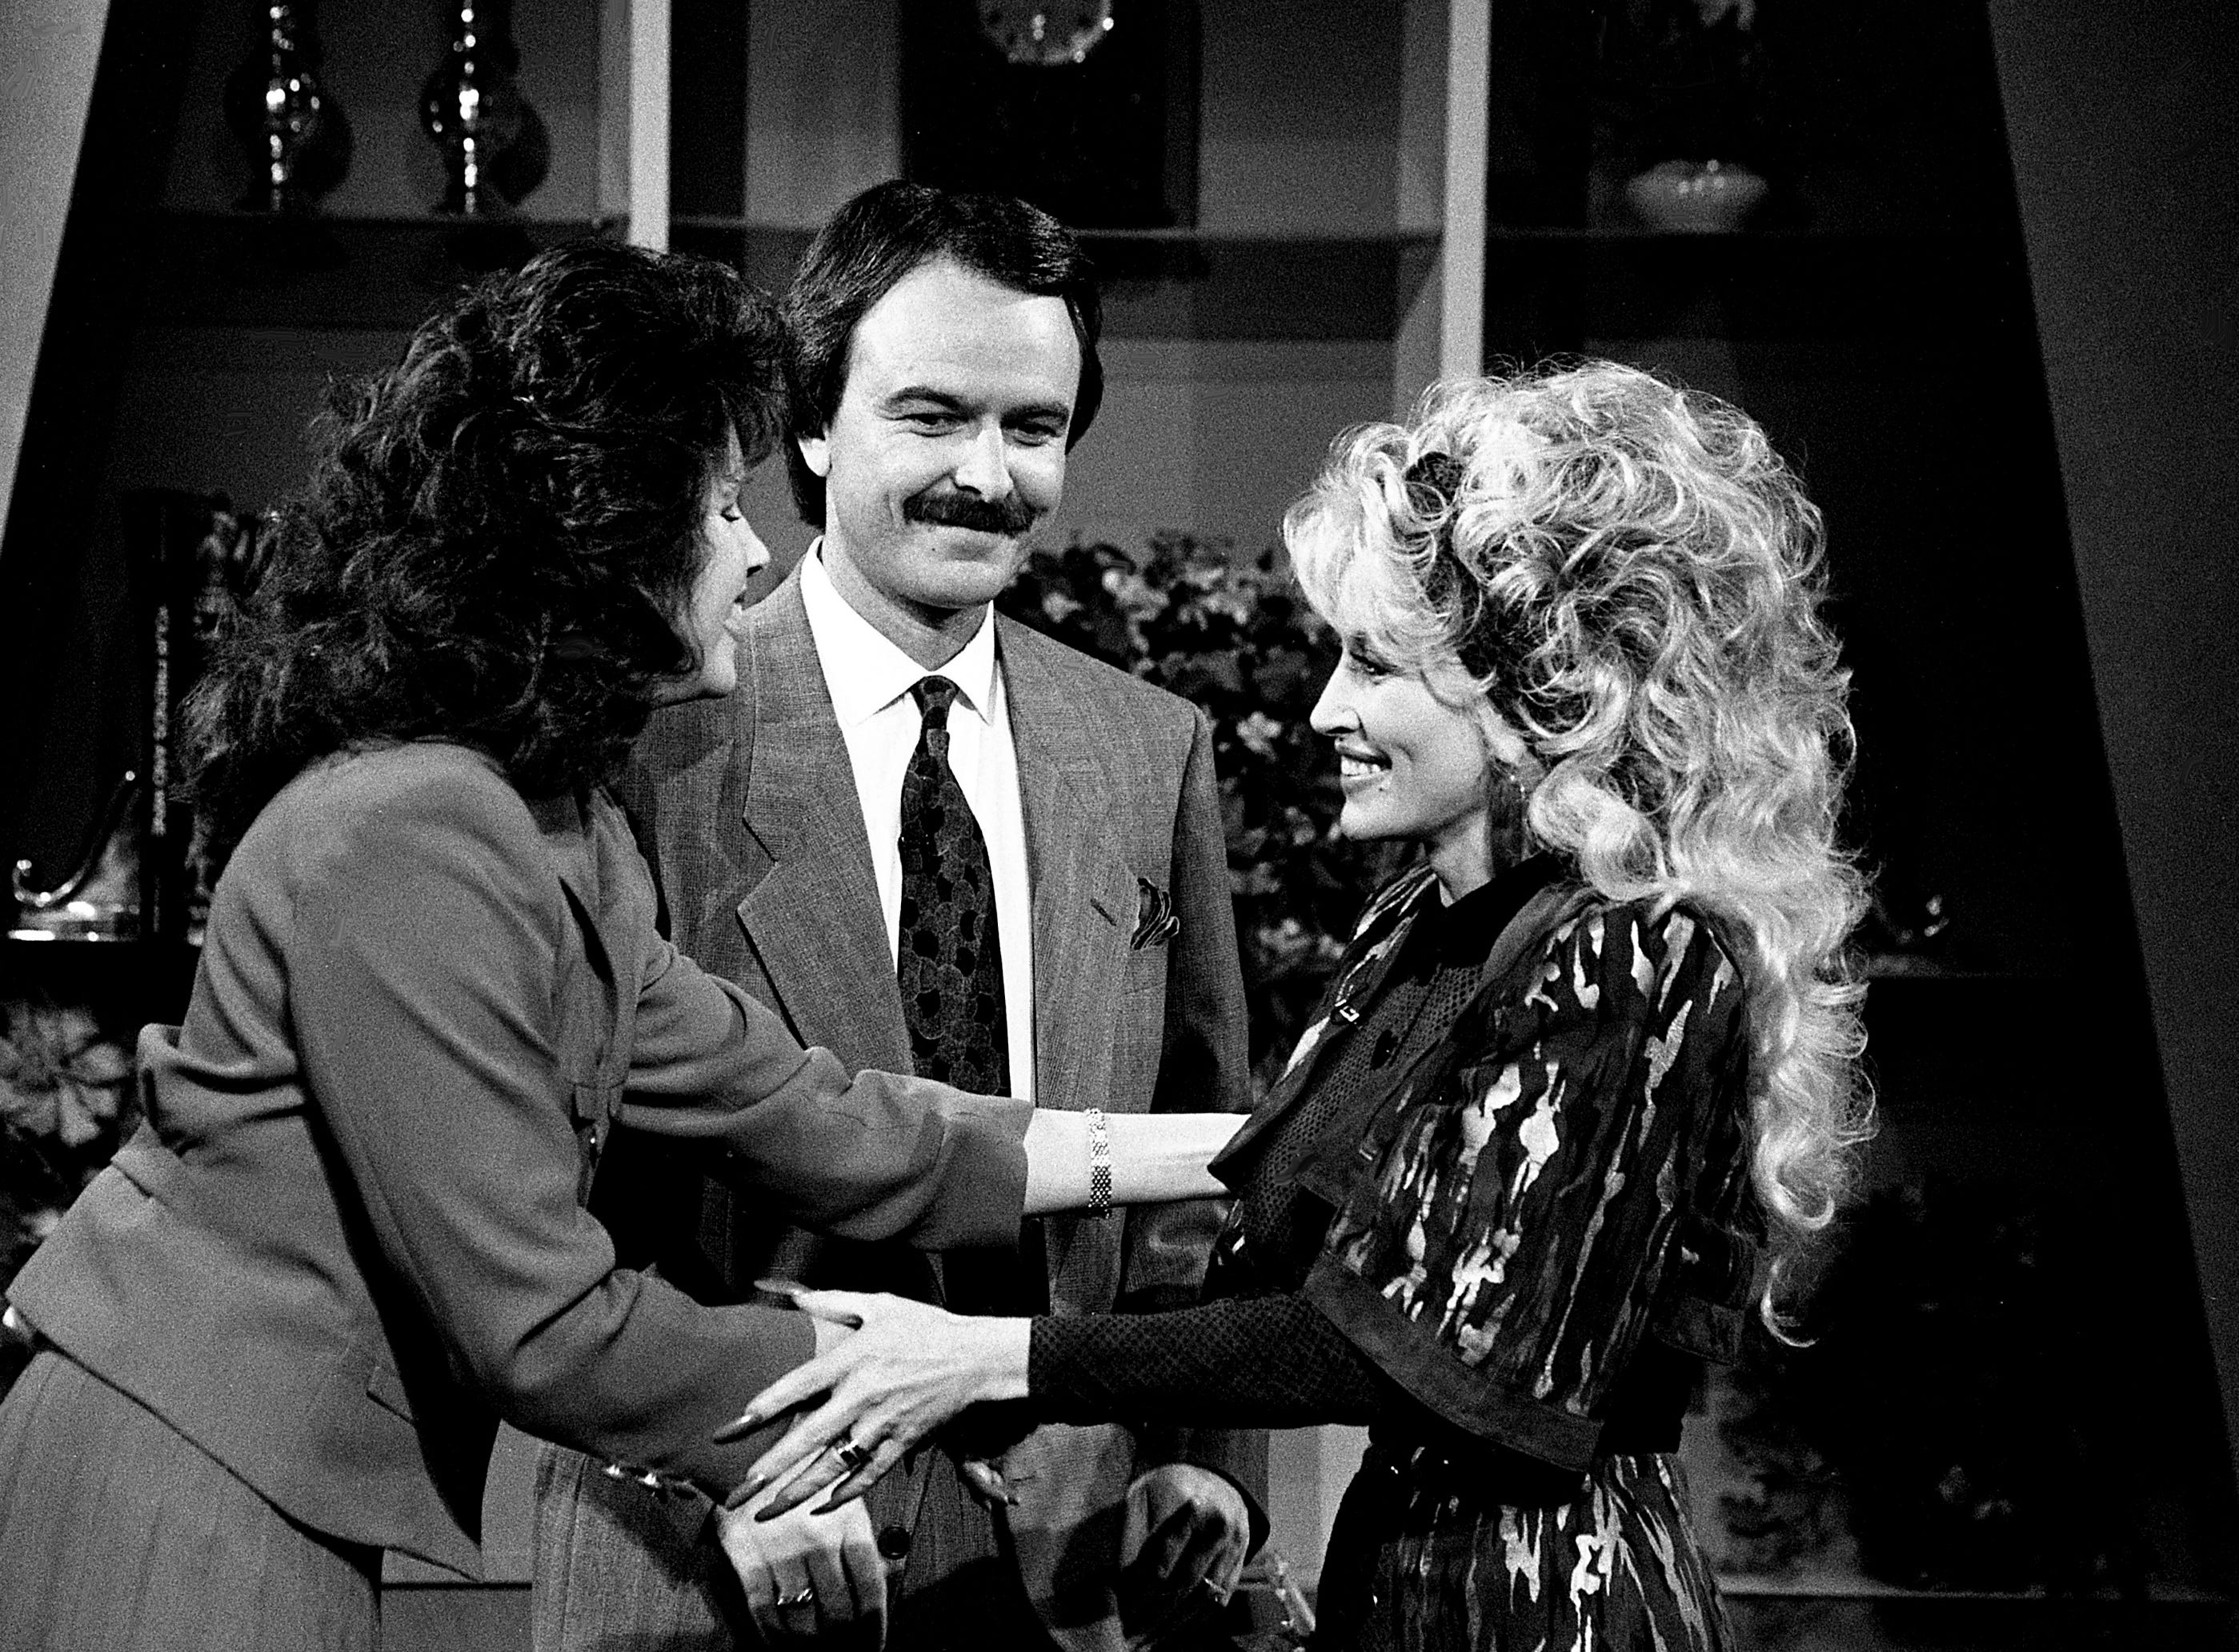 """Special guest Dolly Parton, right, is welcomes by Lorianne Crook, left, and Charlie Chase on the set of """"Crook and Chase"""" on March 24, 1989. Parton has been finishing work on her next album."""